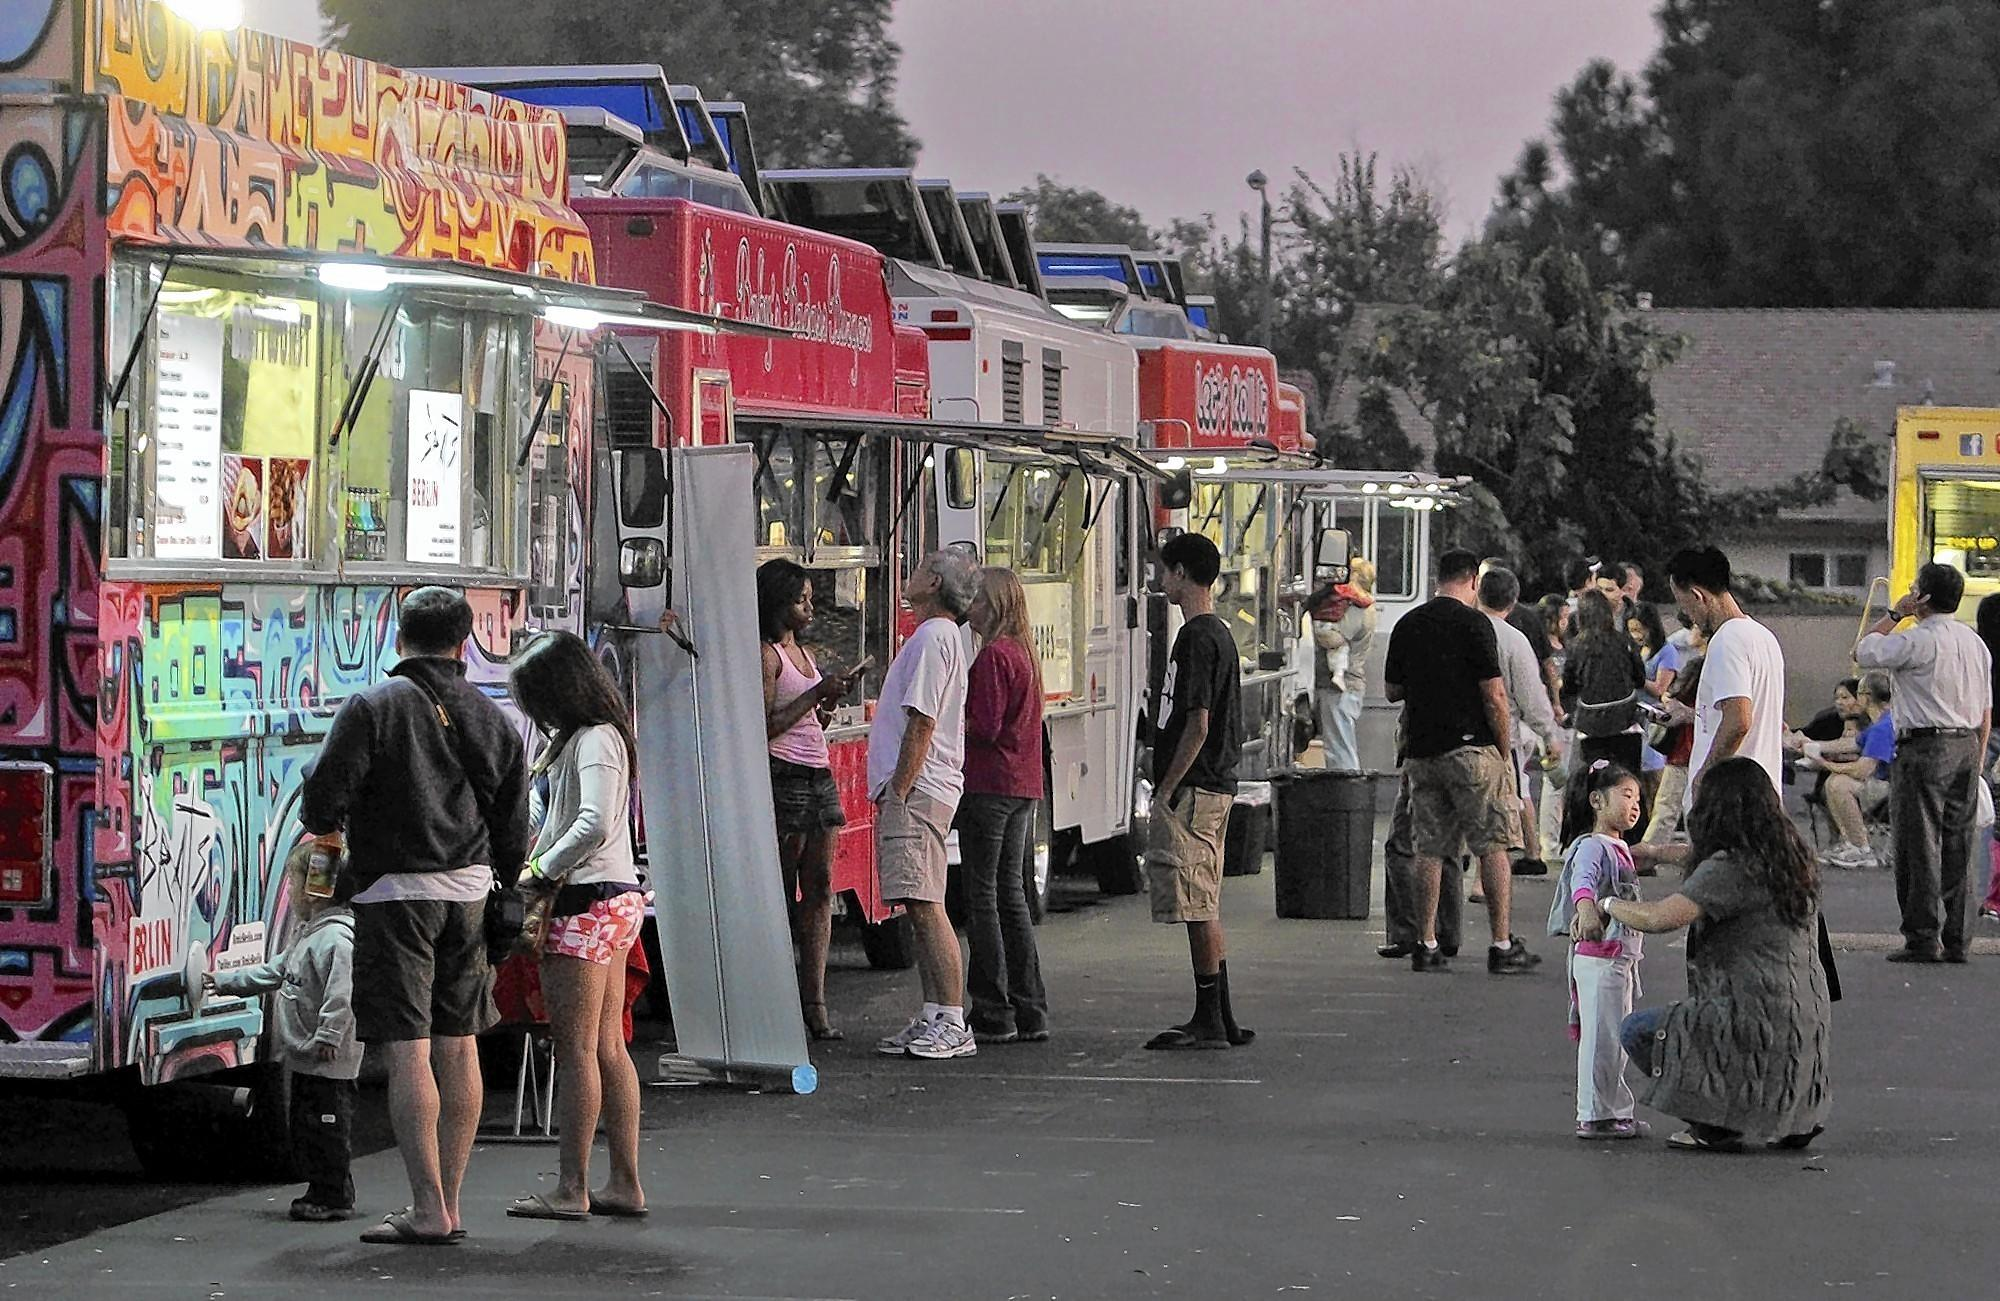 L.A. County health inspectors often don't know where specific food trucks and carts can be found, making surprise inspections impossible. Such unannounced inspections are routine for restaurants. Above, food truck vendors in Cerritos in 2011.